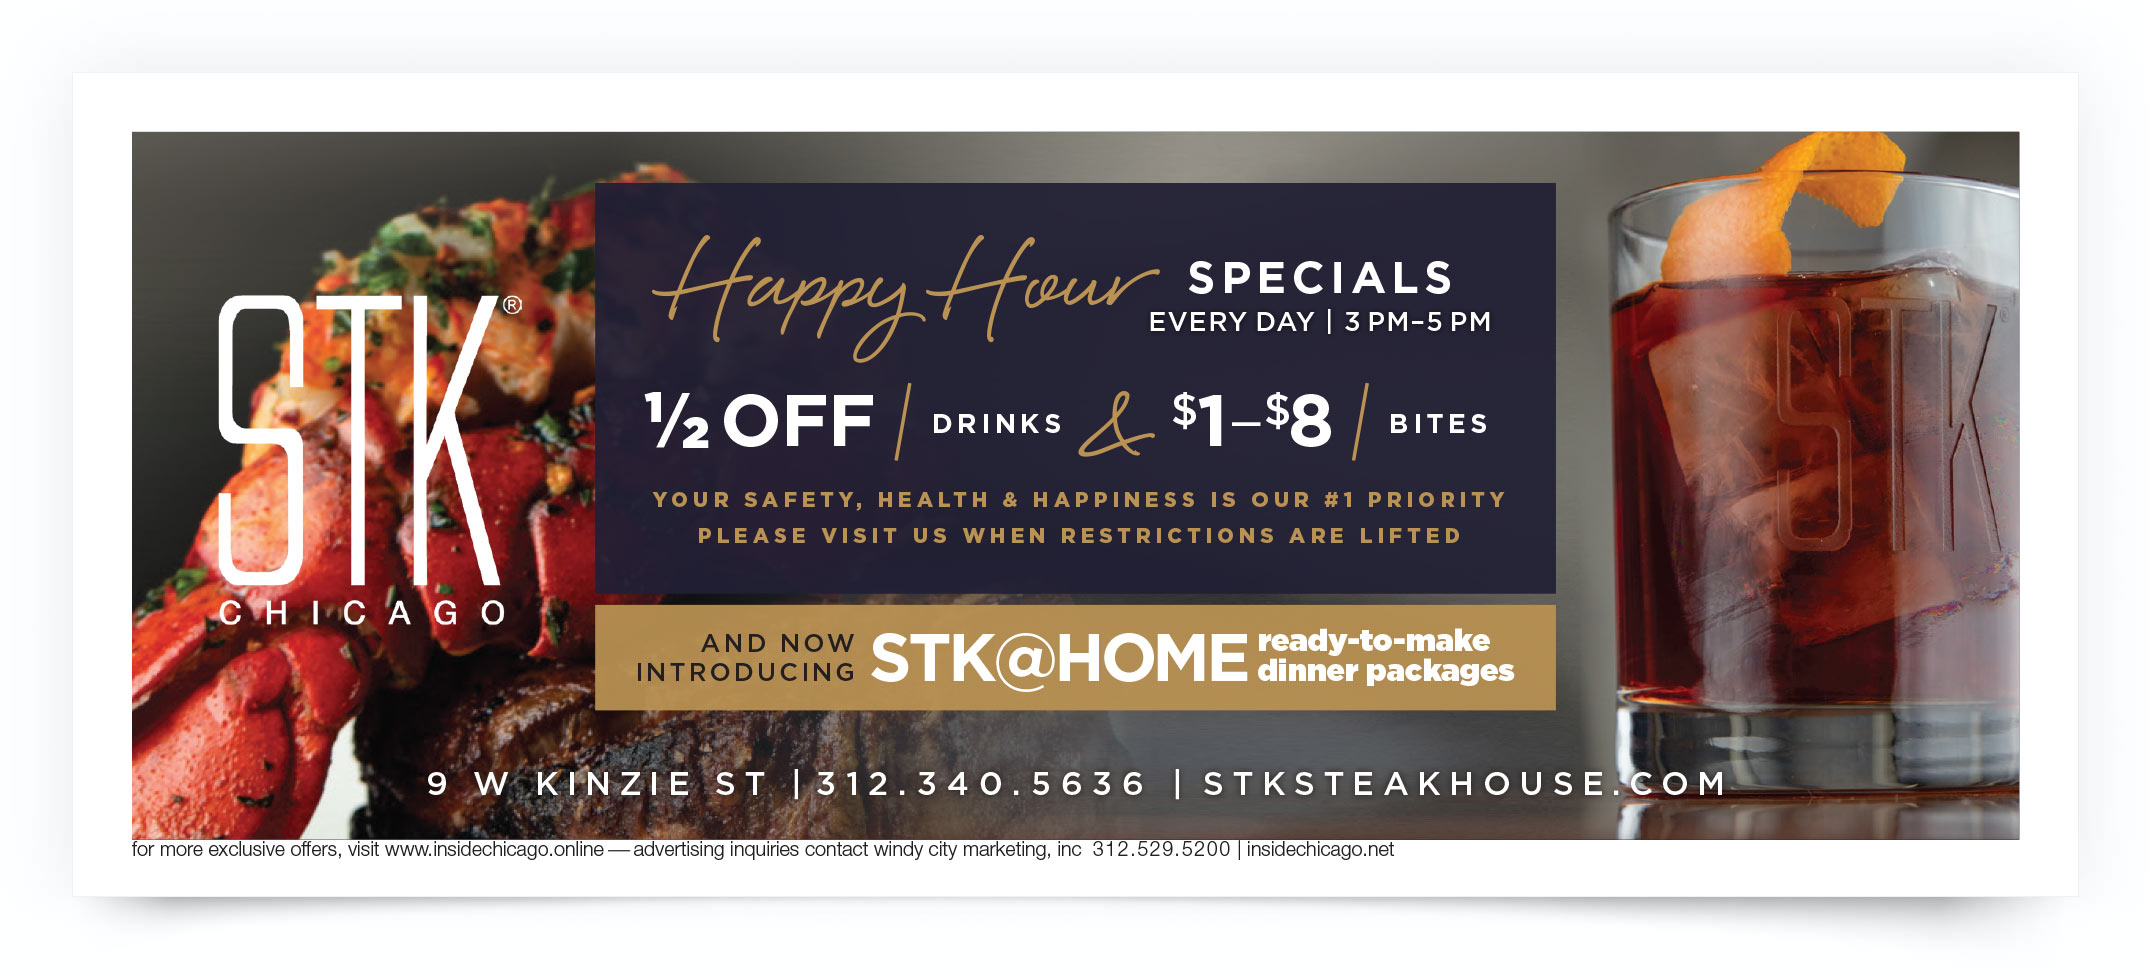 STK Steakhouse Chicago Coupon Offer